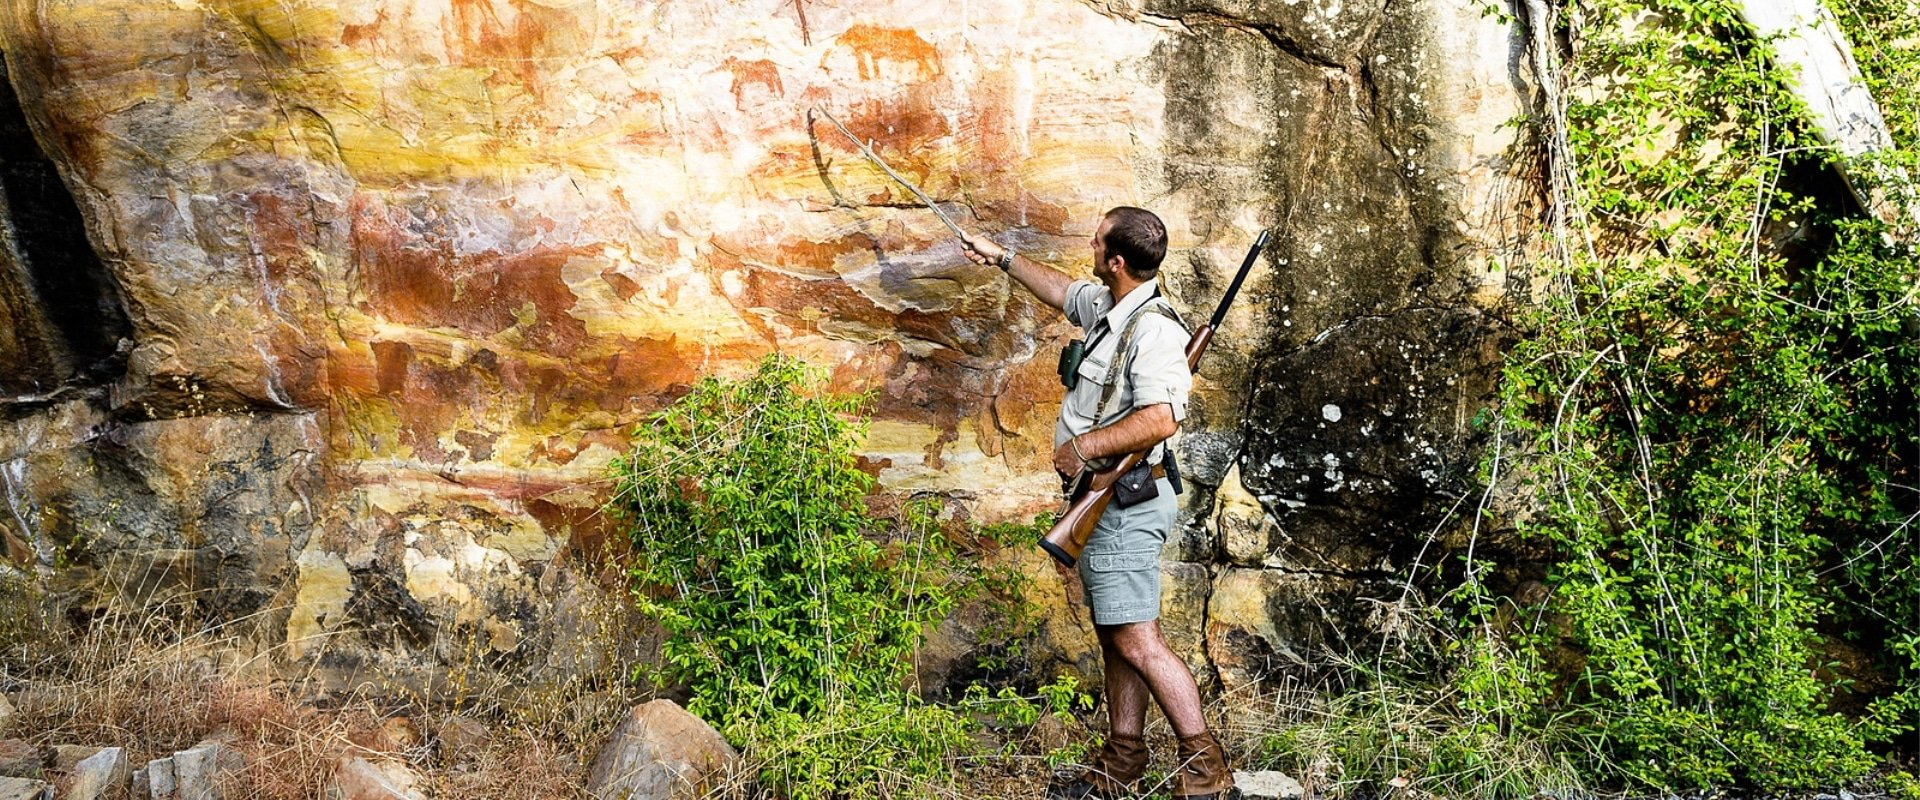 Let Rock Art reveal facts about the beliefs of the San and Khoi Khoi people